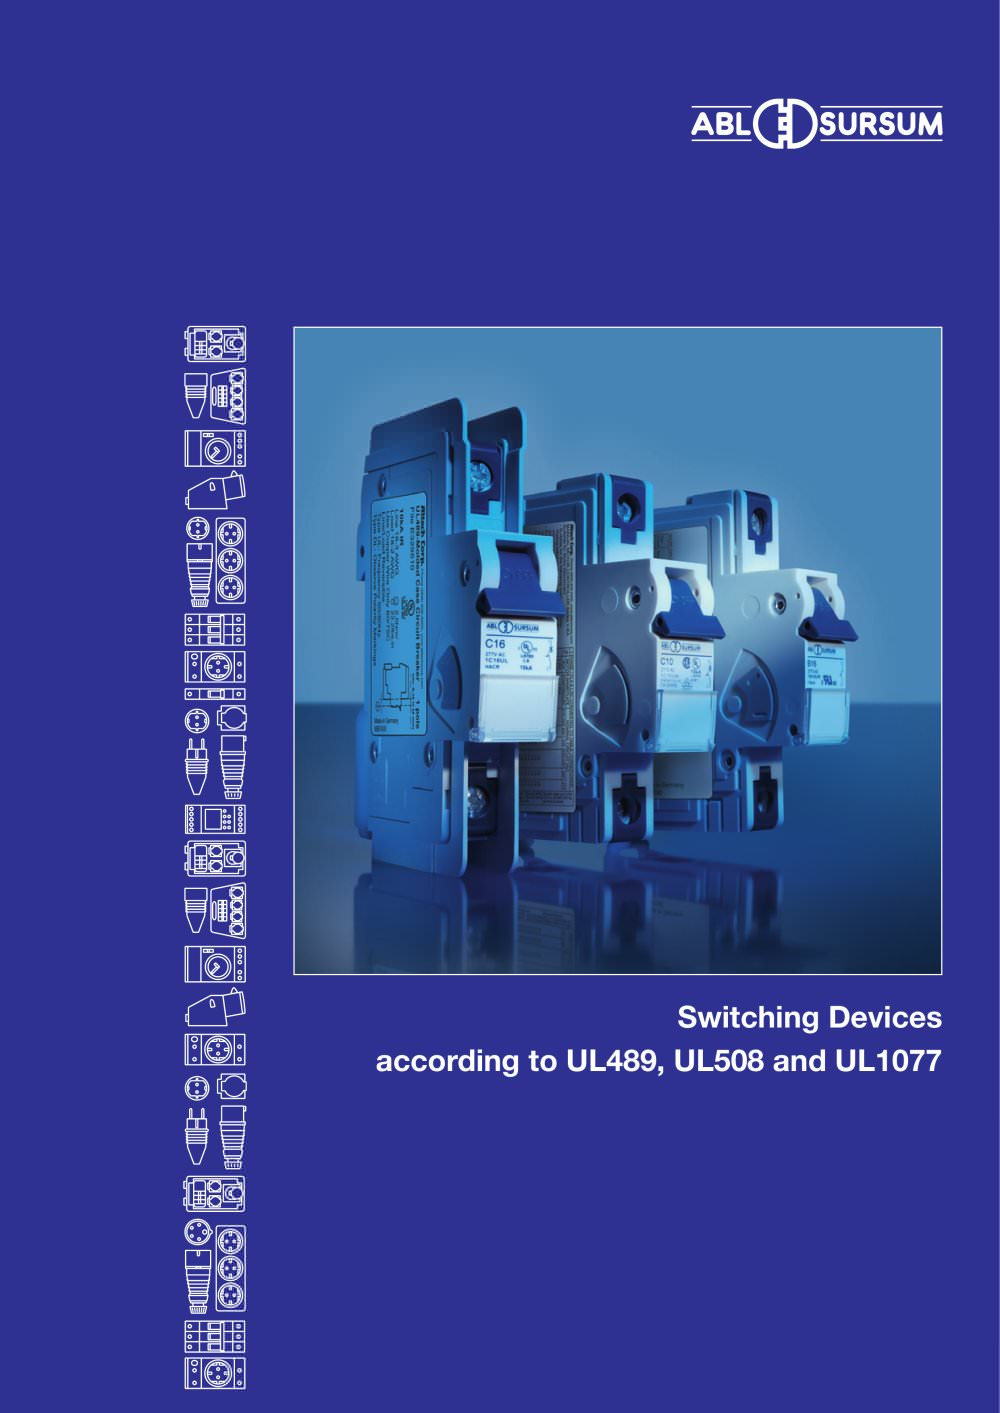 Switching Devices according to UL489, UL508 and UL1077 - ABL SURSUM ...